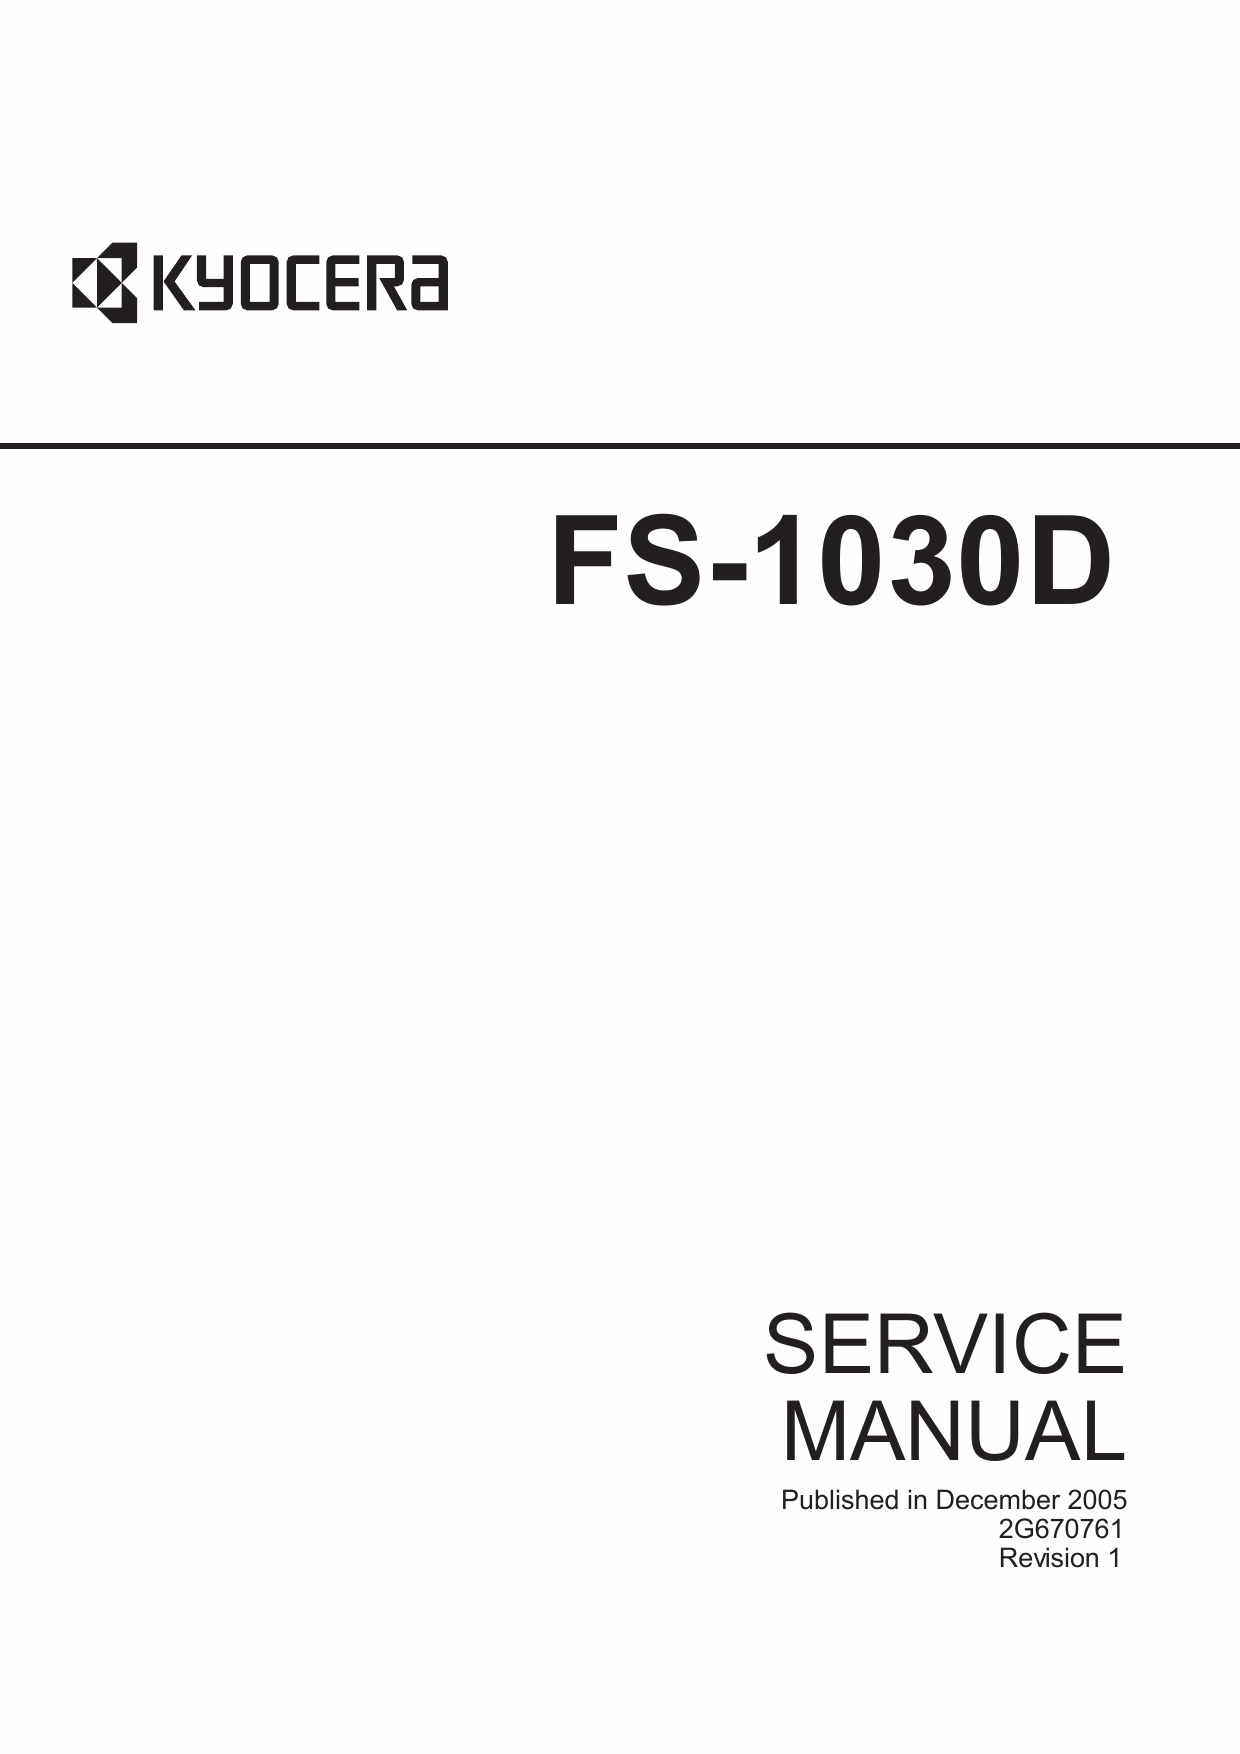 KYOCERA LaserPrinter FS-1030D Parts and Service Manual